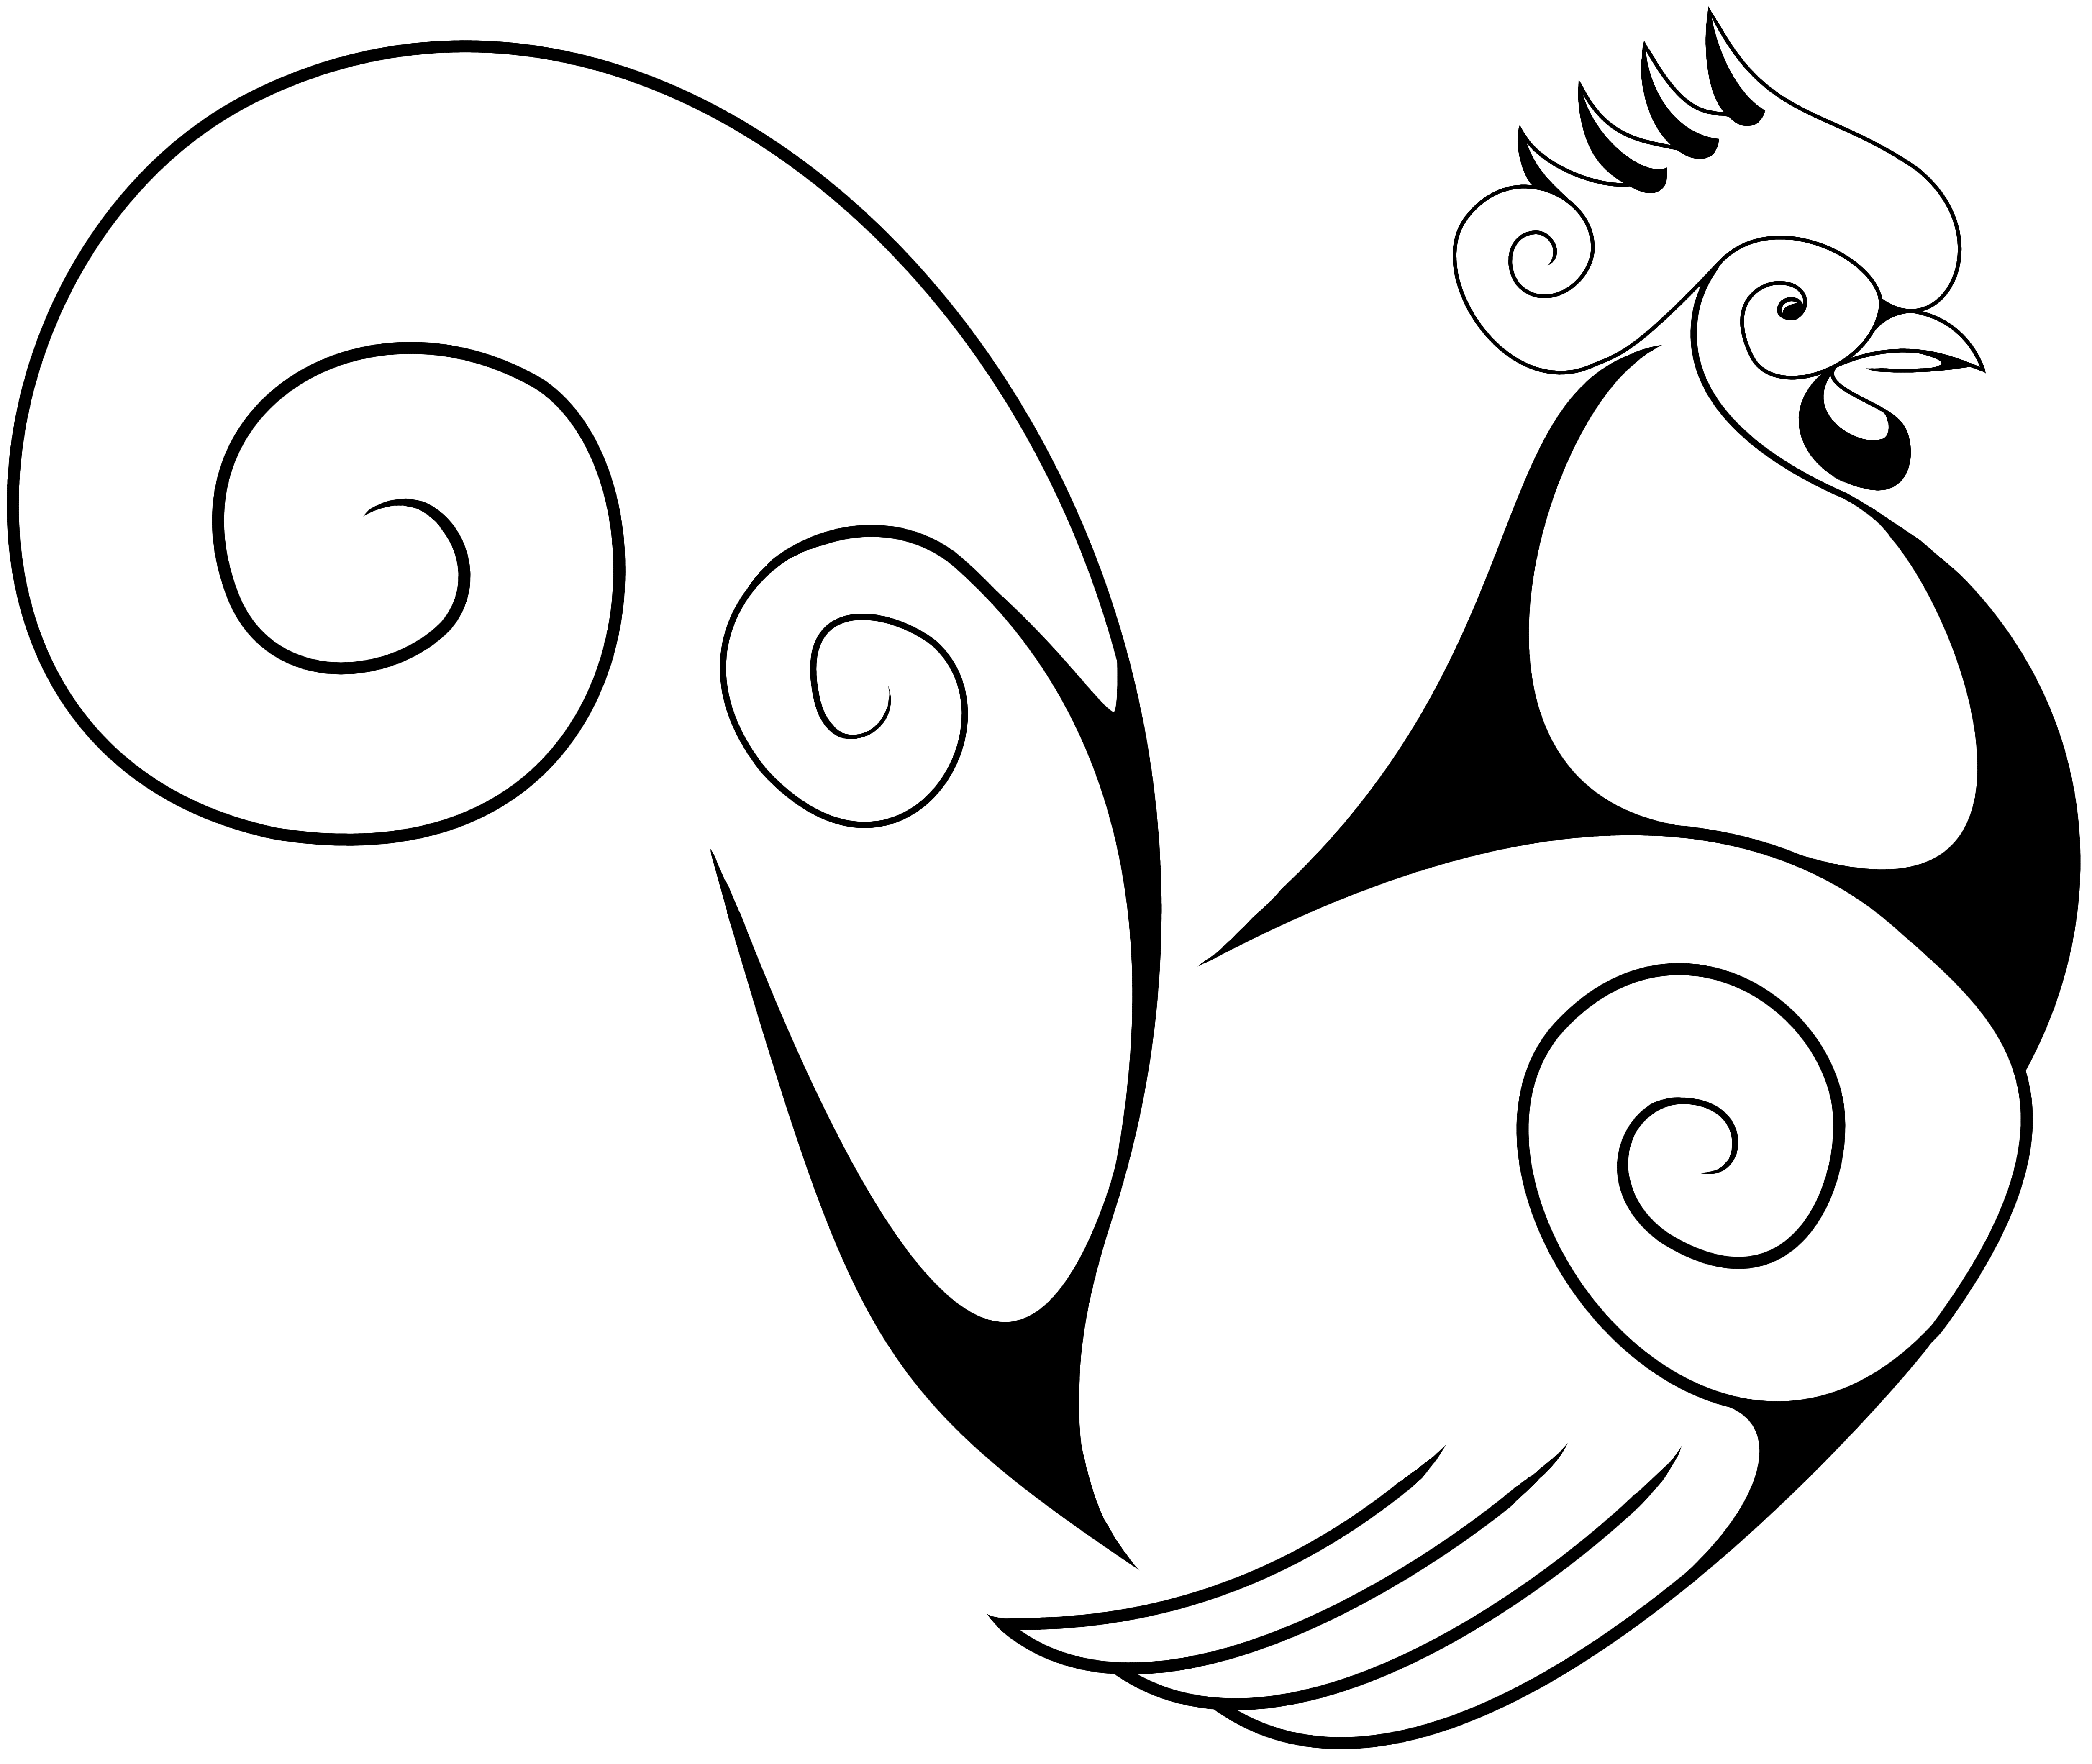 A Swirly Rooster